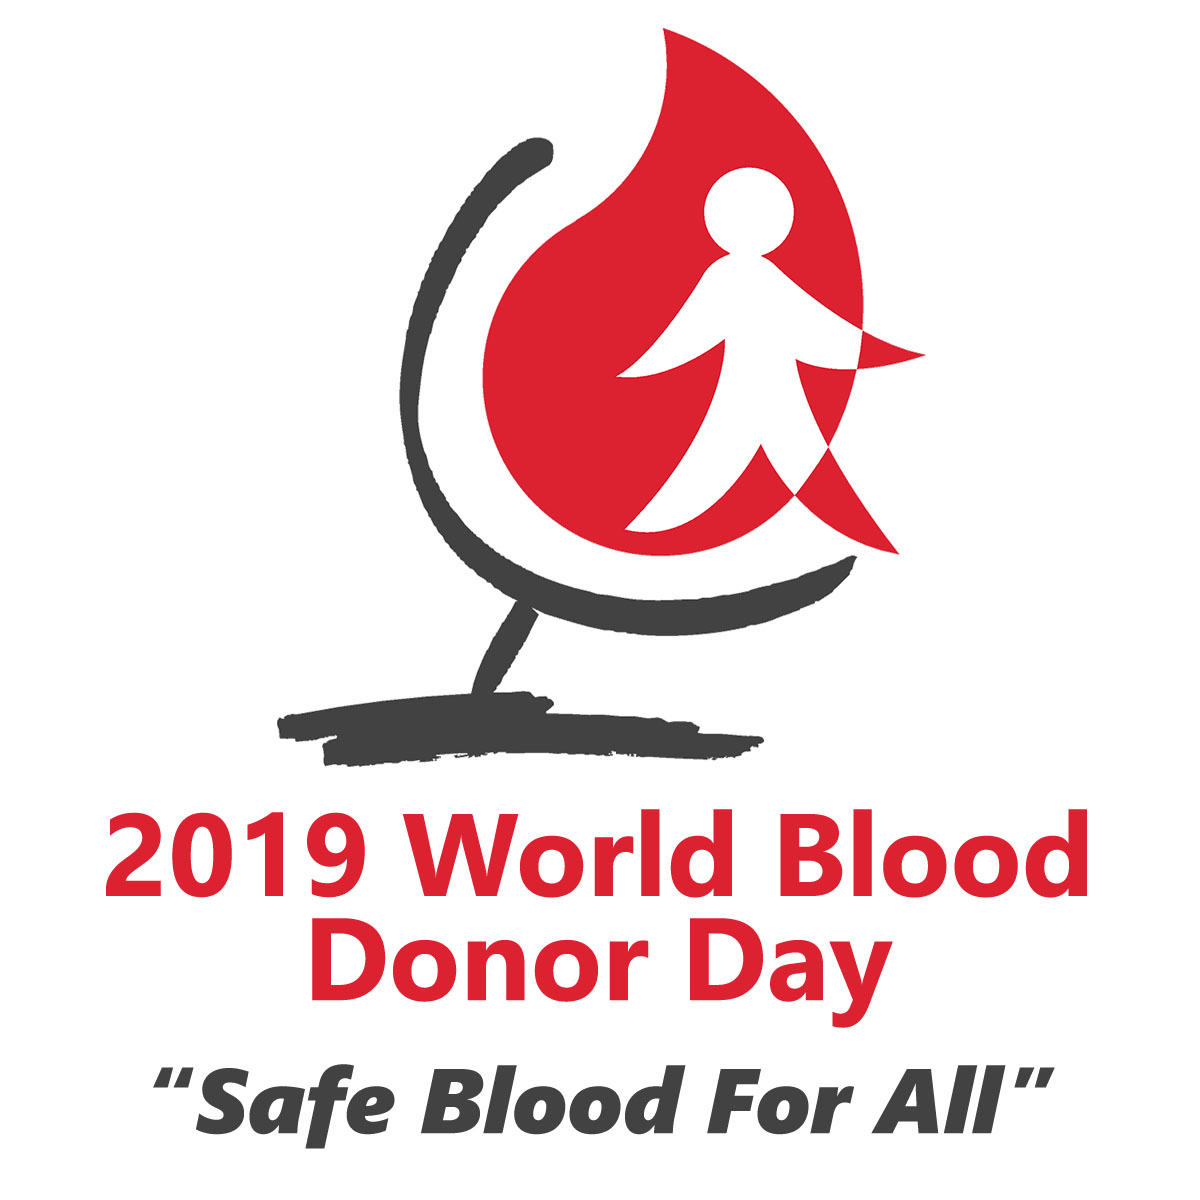 2019 World Blood Donor Day